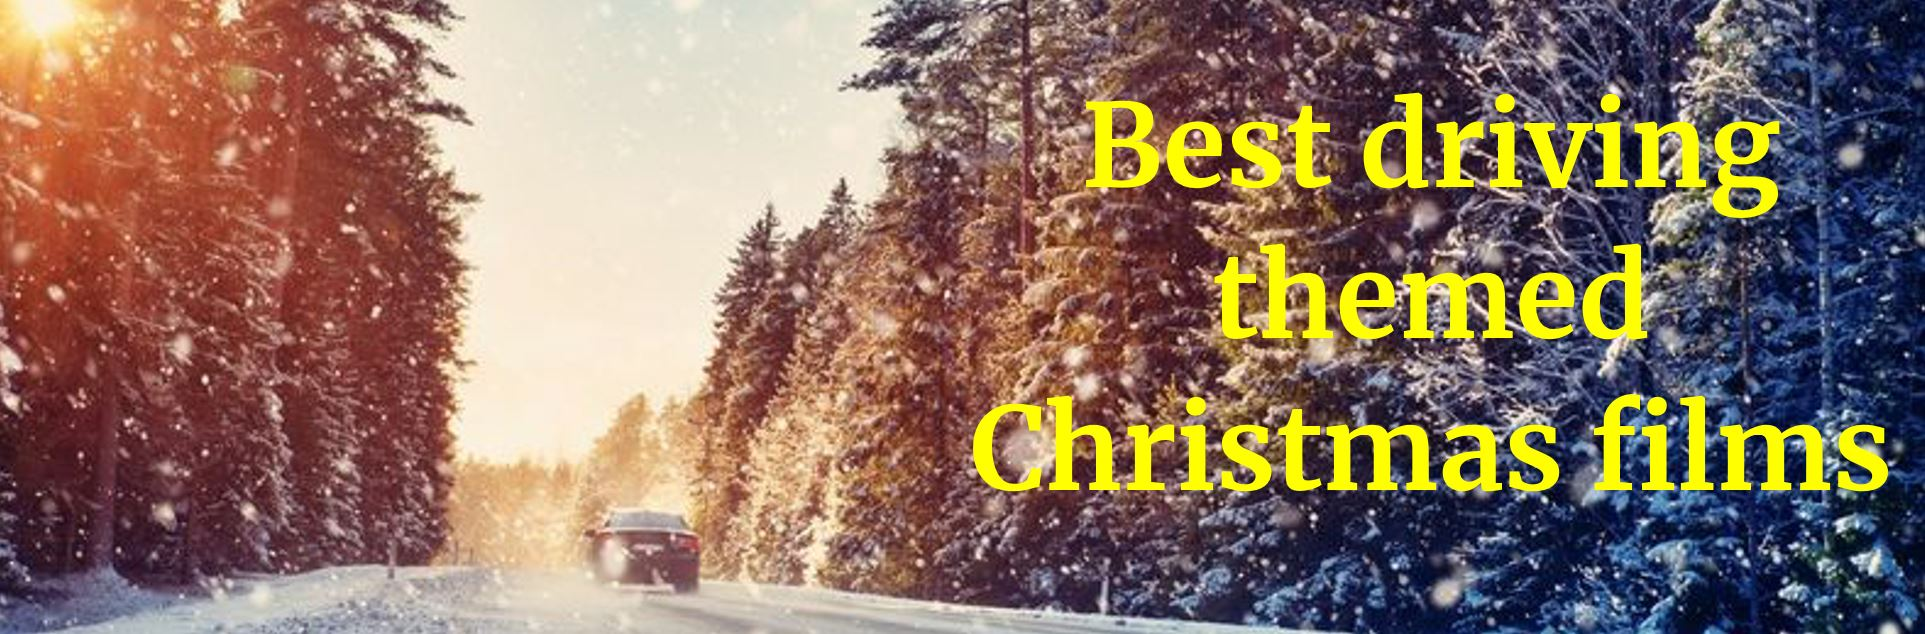 Redtail best driving themed Christmas films